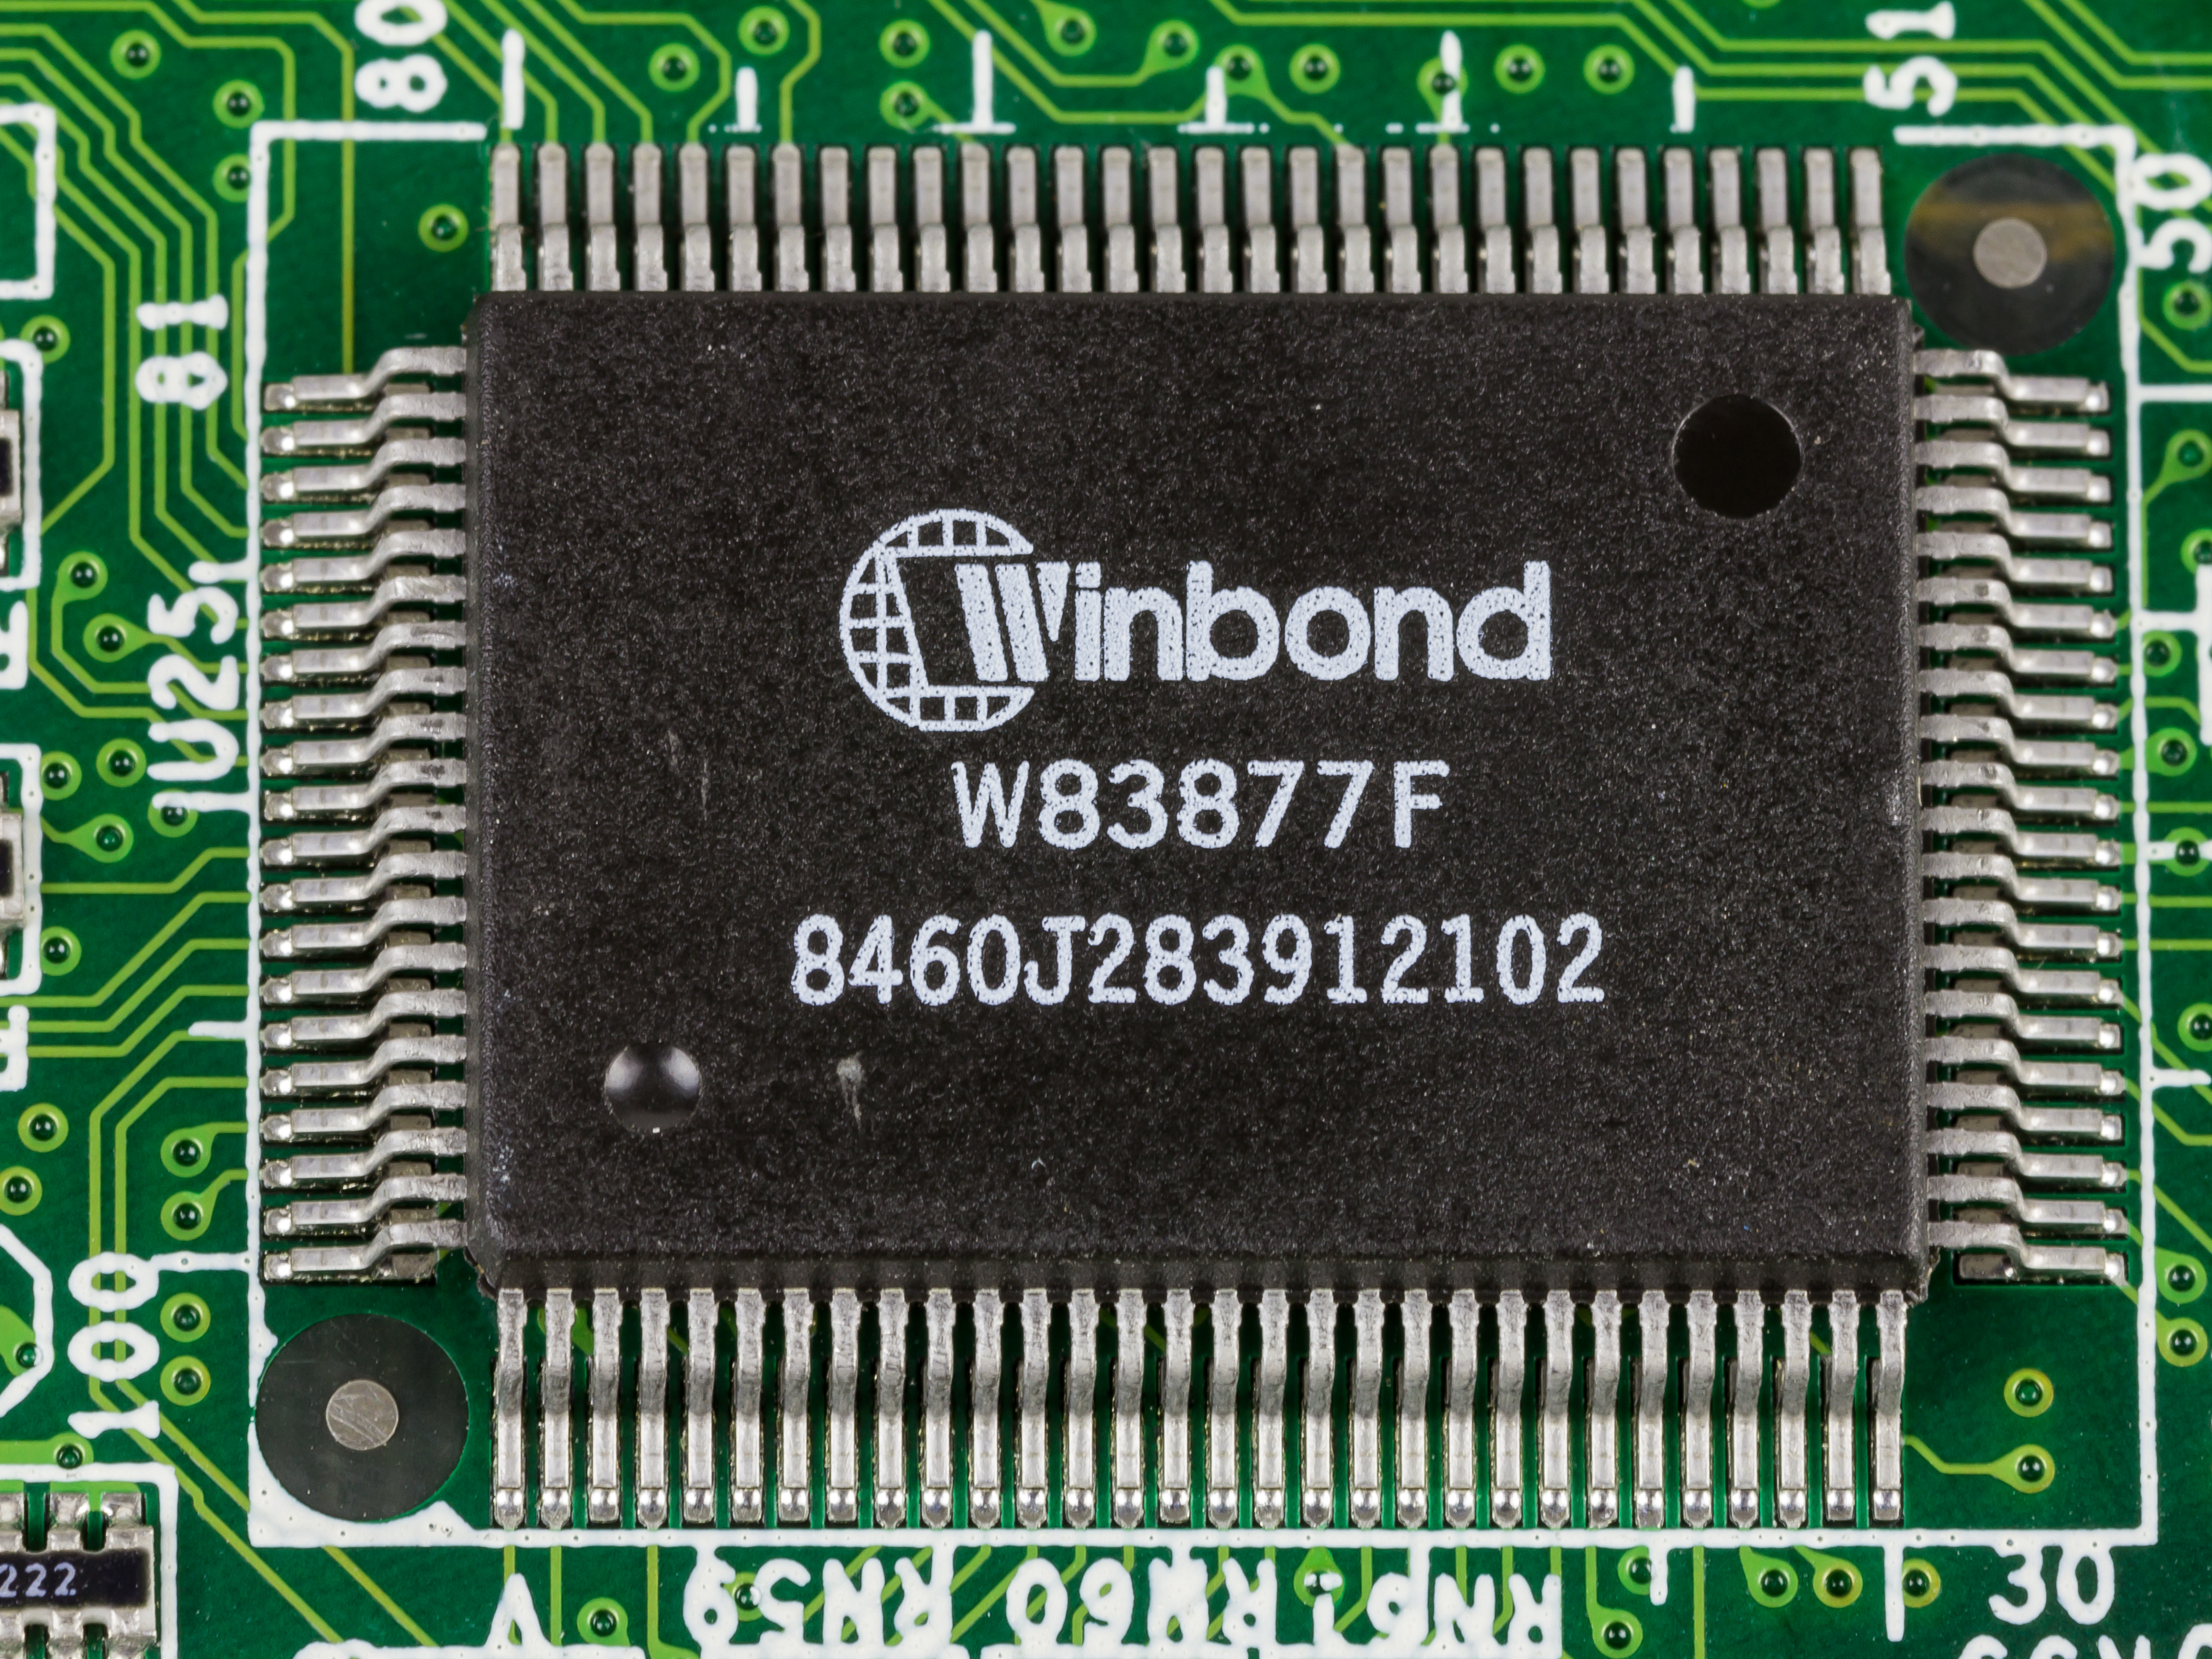 Filerocky 518hv Winbond W83877f 2389 Wikimedia Commons The History Of Integrated Circuits And Microchips Thumbnail For Version As 1017 6 October 2016